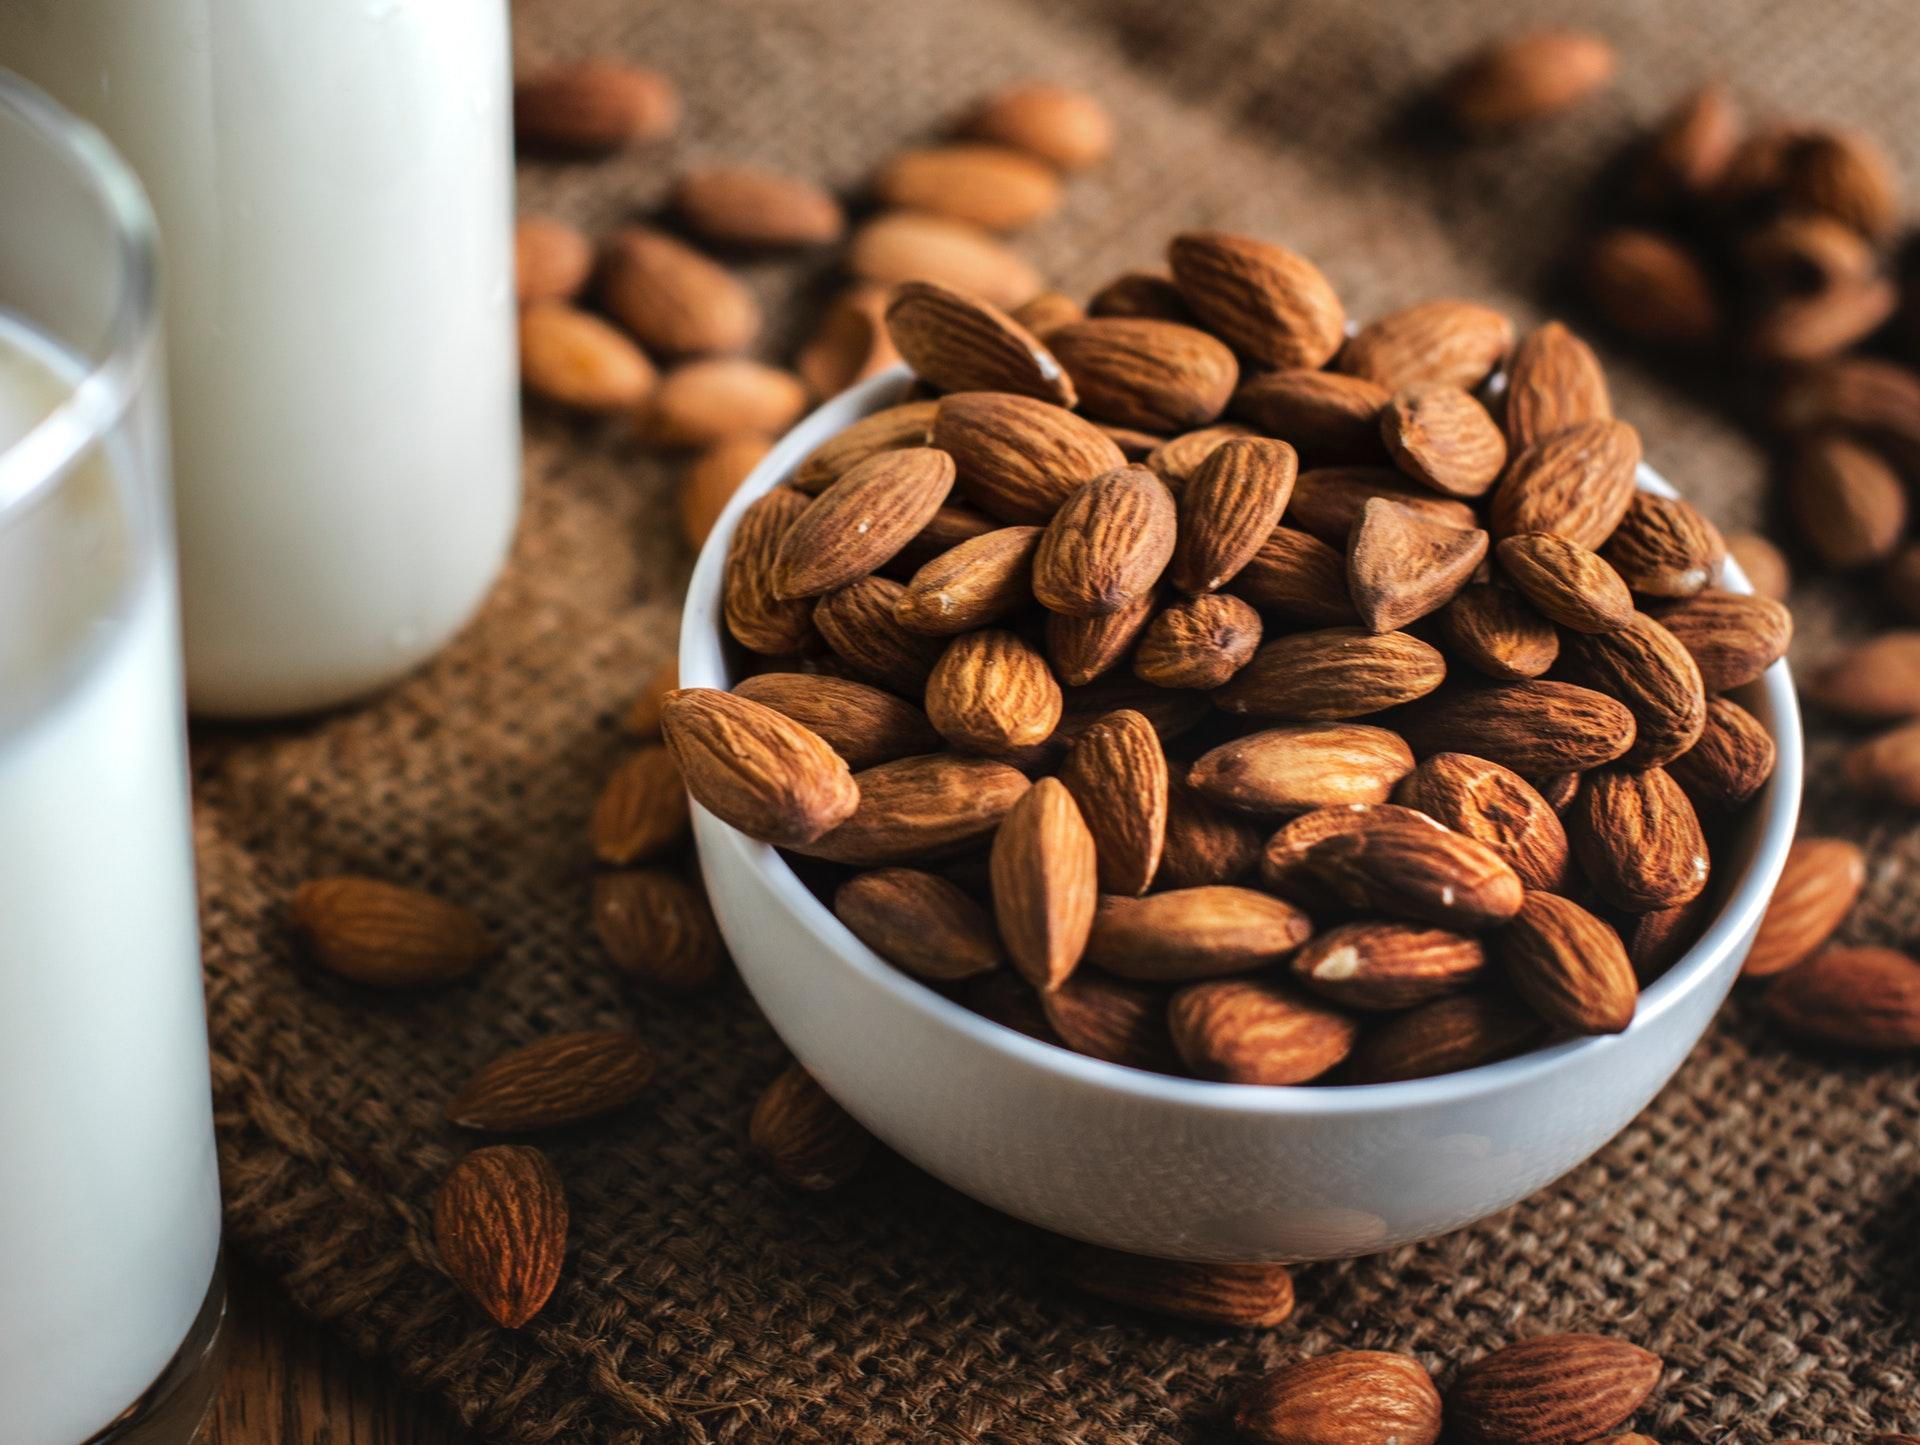 Almond Benefits: 5 Great Reasons to Eat Them